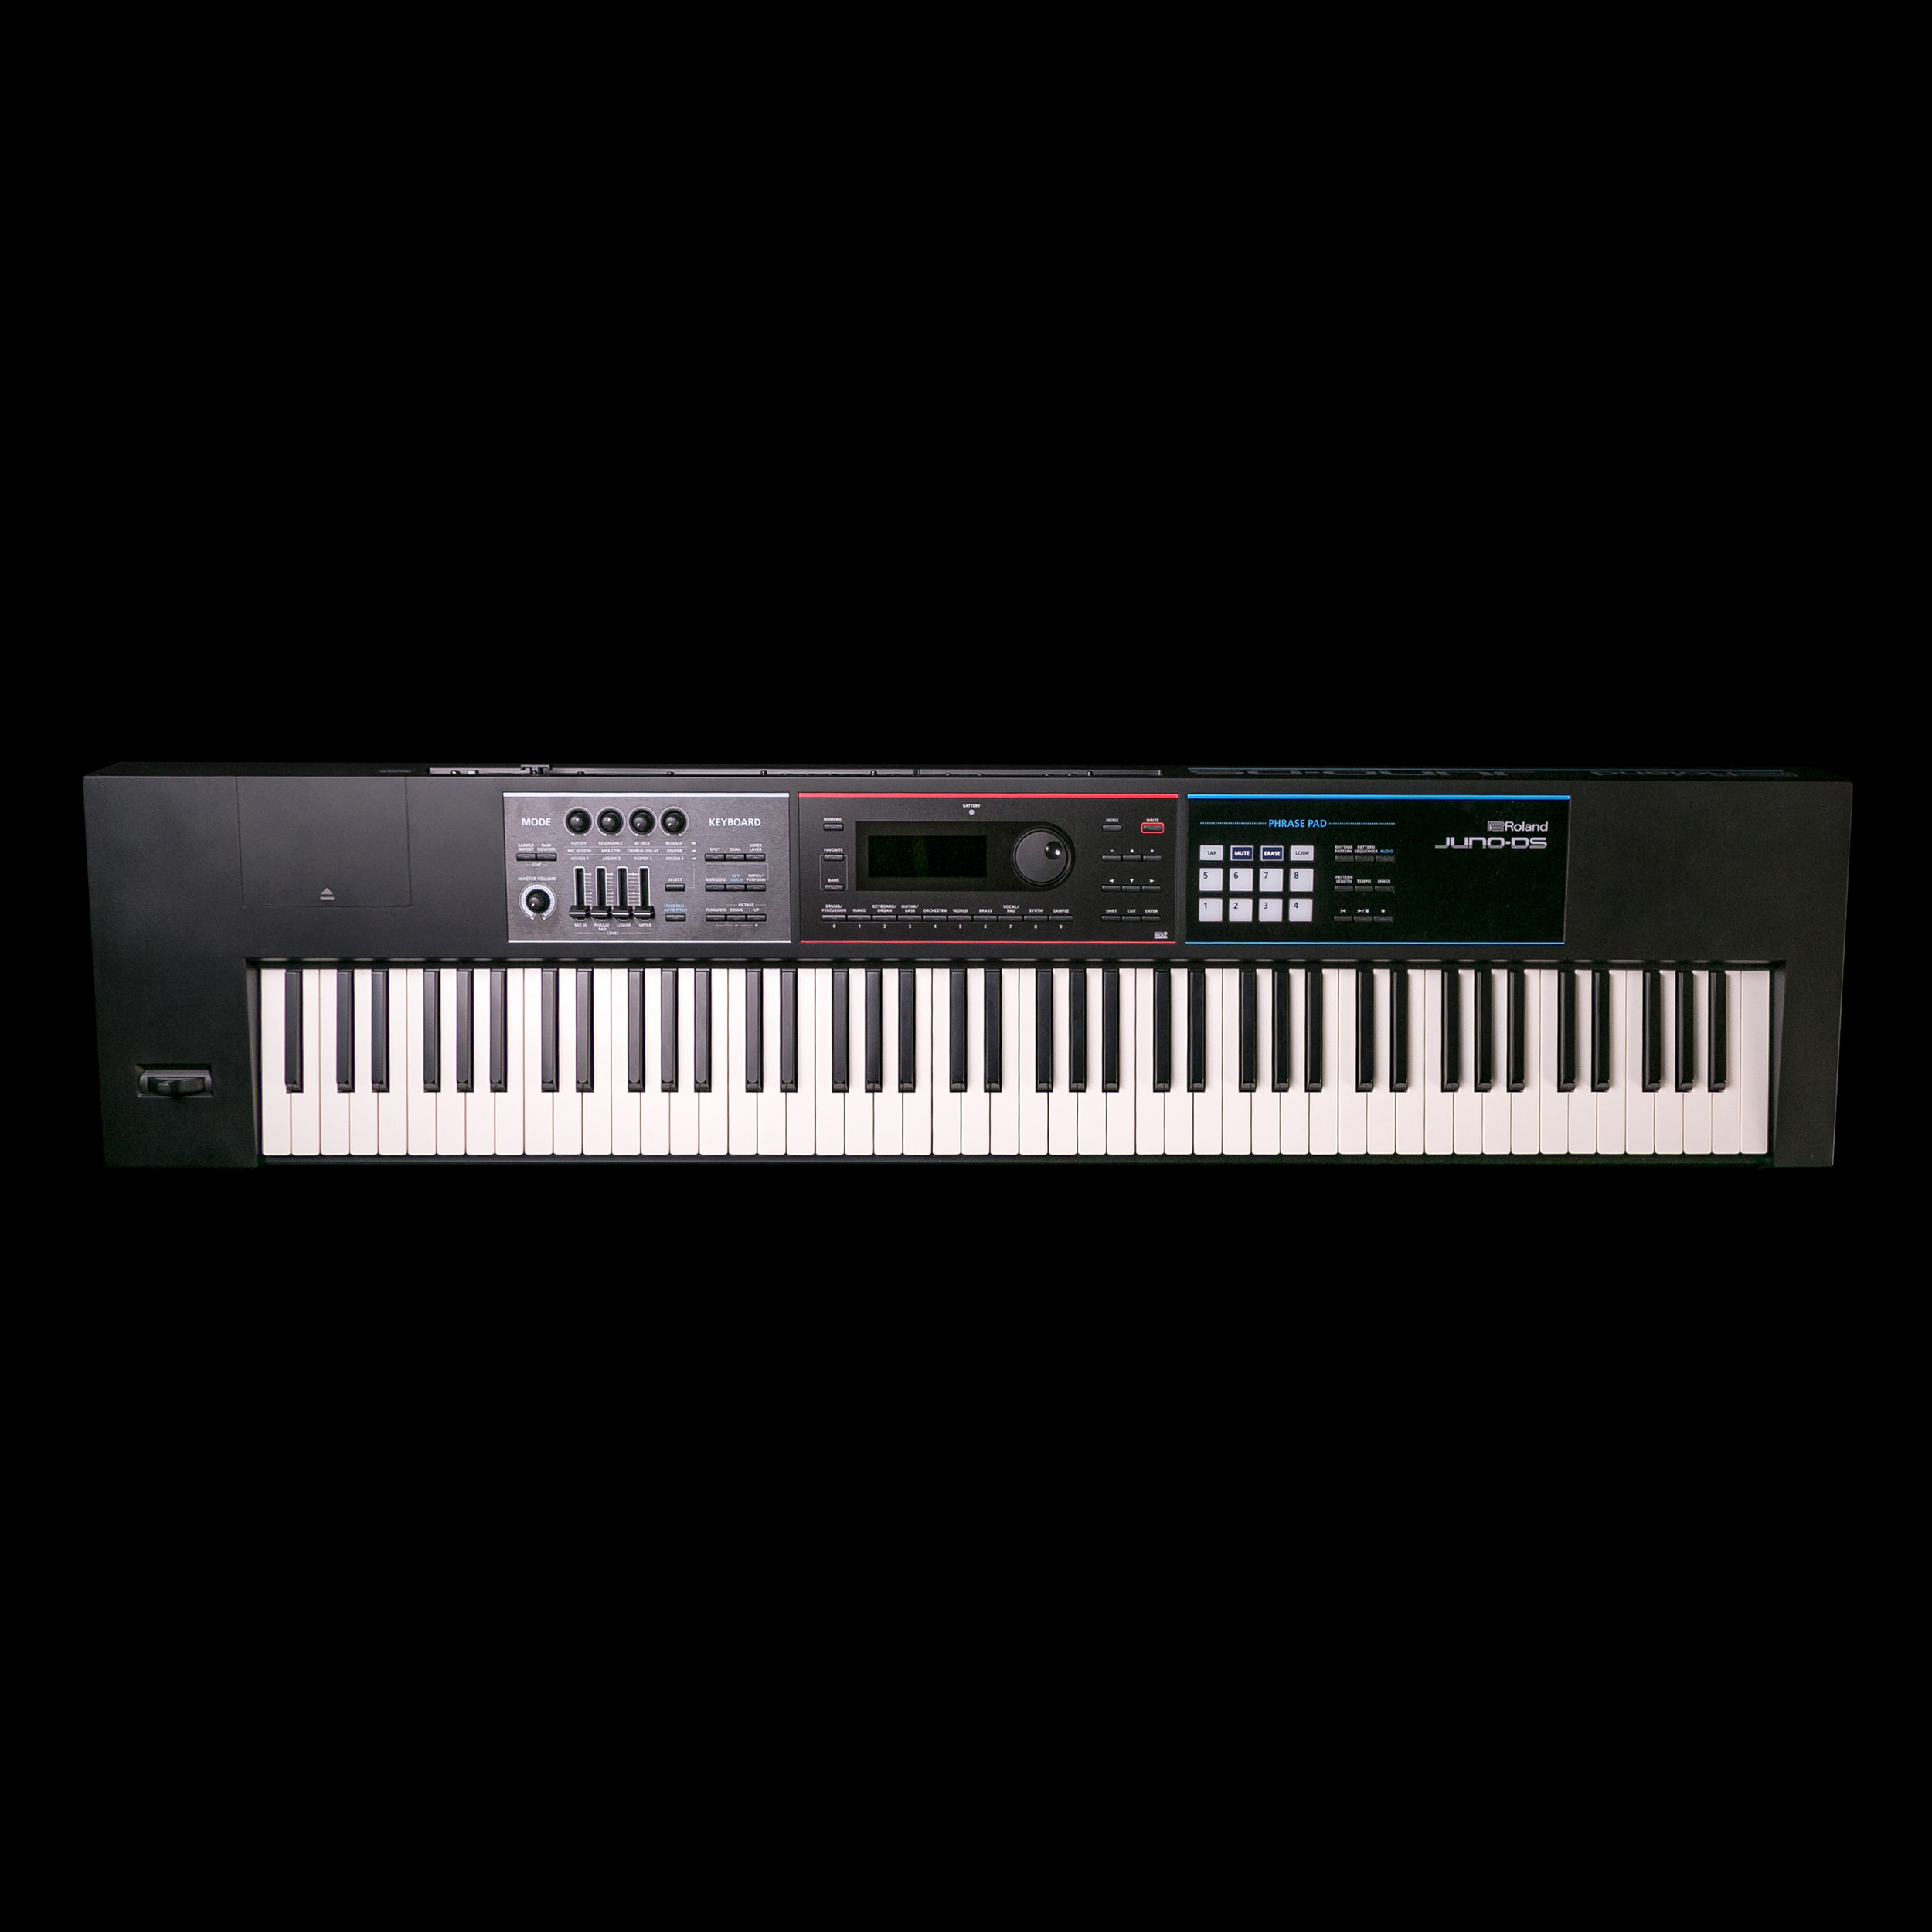 roland juno ds 88 synthesizer w 88 weighted keys ebay. Black Bedroom Furniture Sets. Home Design Ideas